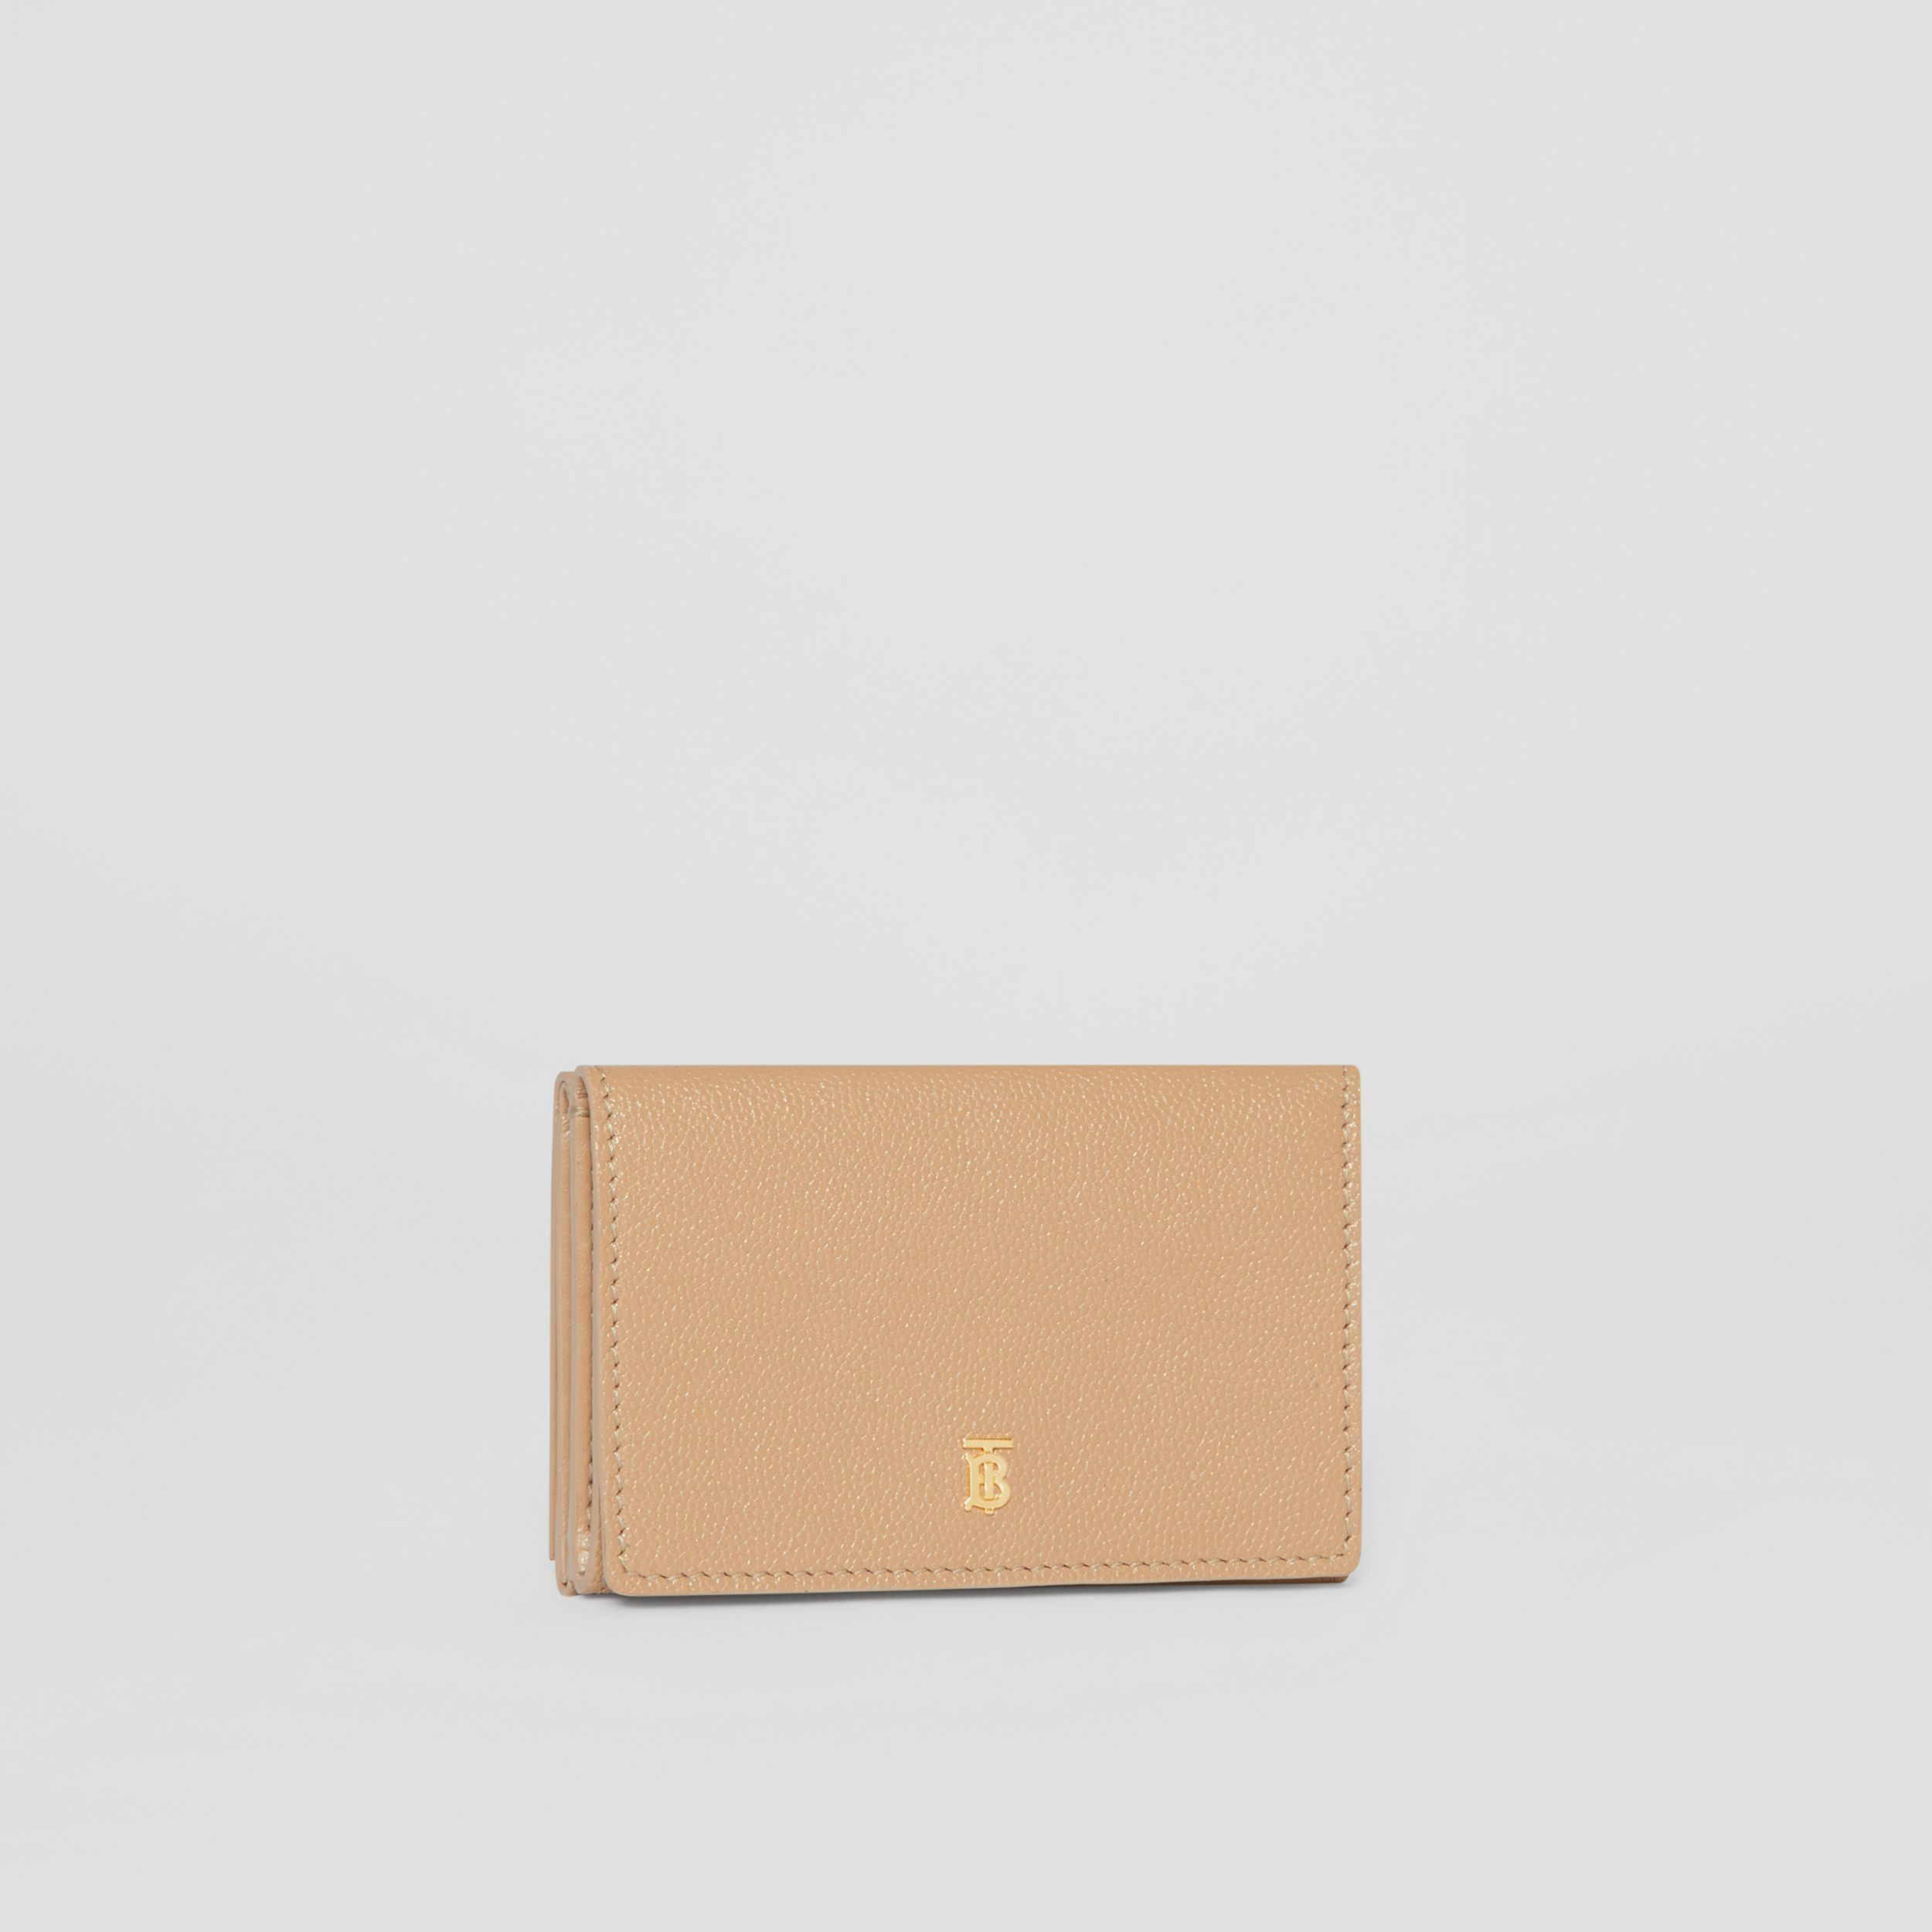 Small Grainy Leather Folding Wallet in Archive Beige - Women | Burberry - 4